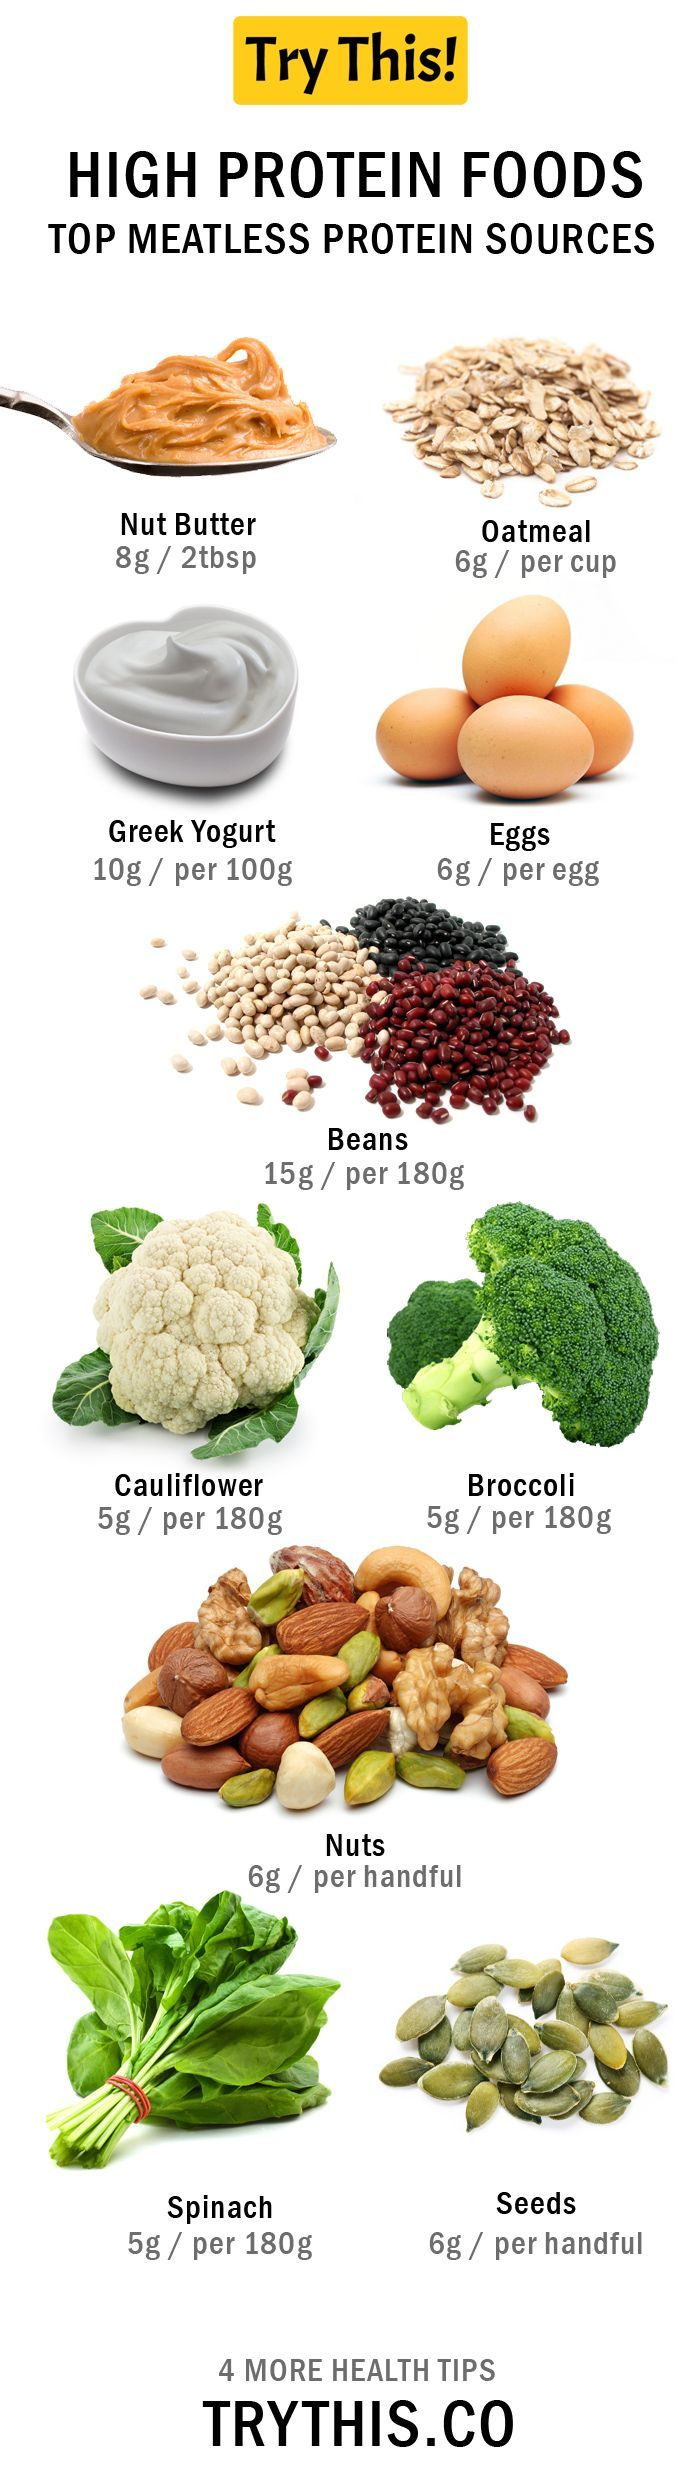 picture 5 High-Protein Foods Nutritionists Want You To Eat More Of